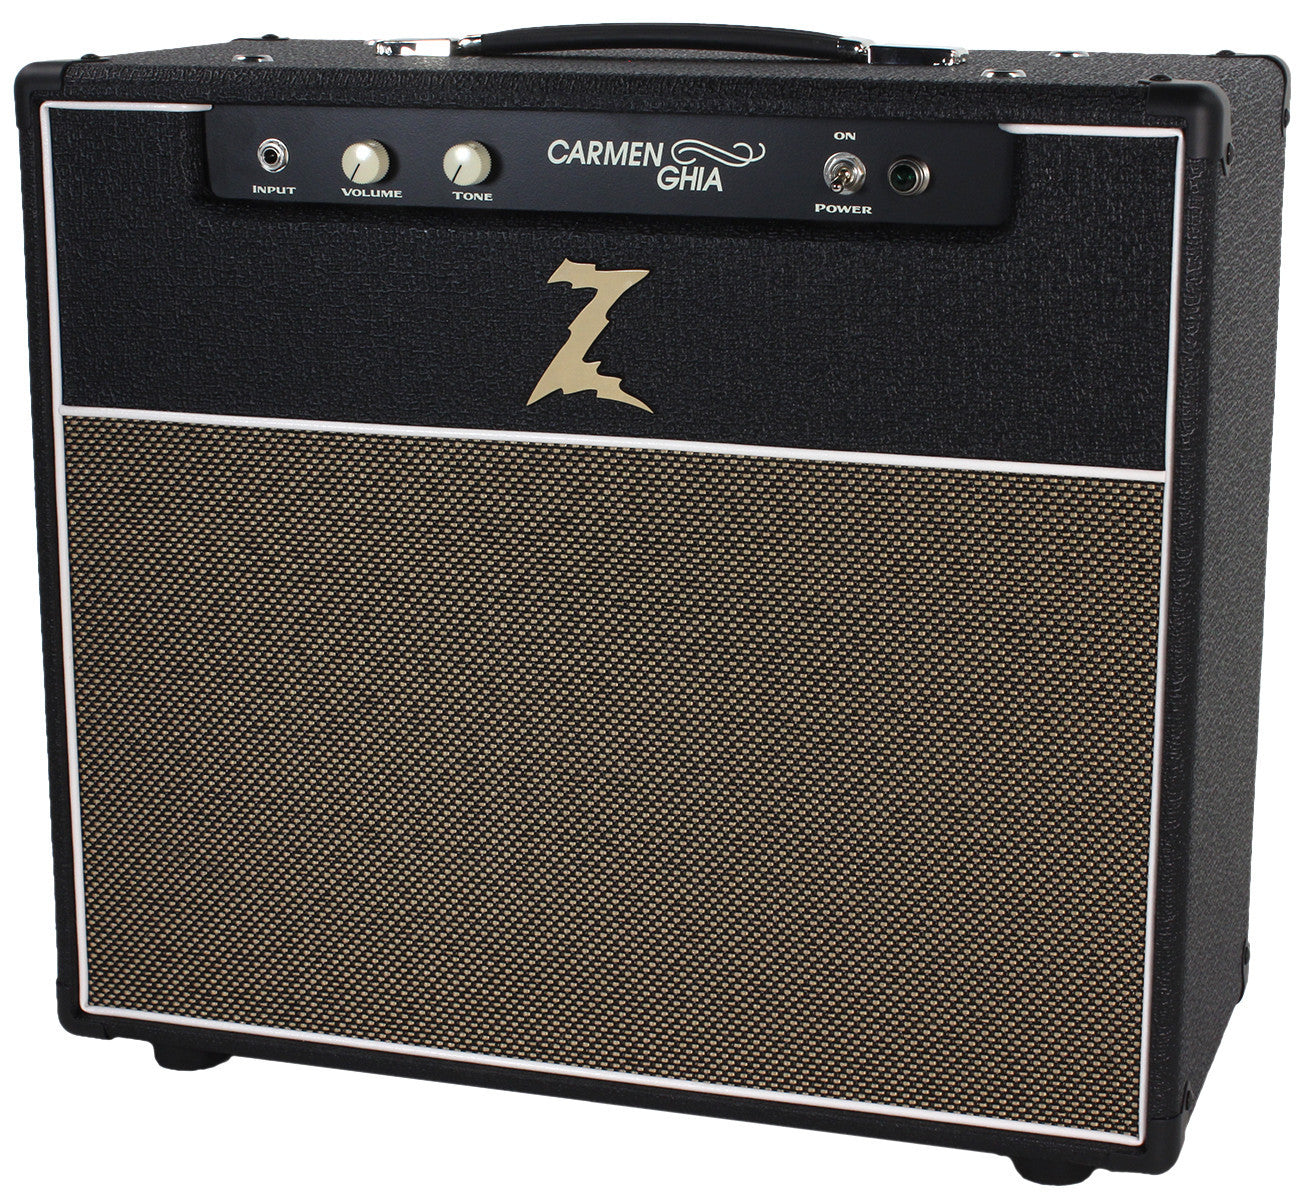 Harmonicas For Sale >> Dr. Z Carmen Ghia 1x12 Lite Combo - Black - Tan ...